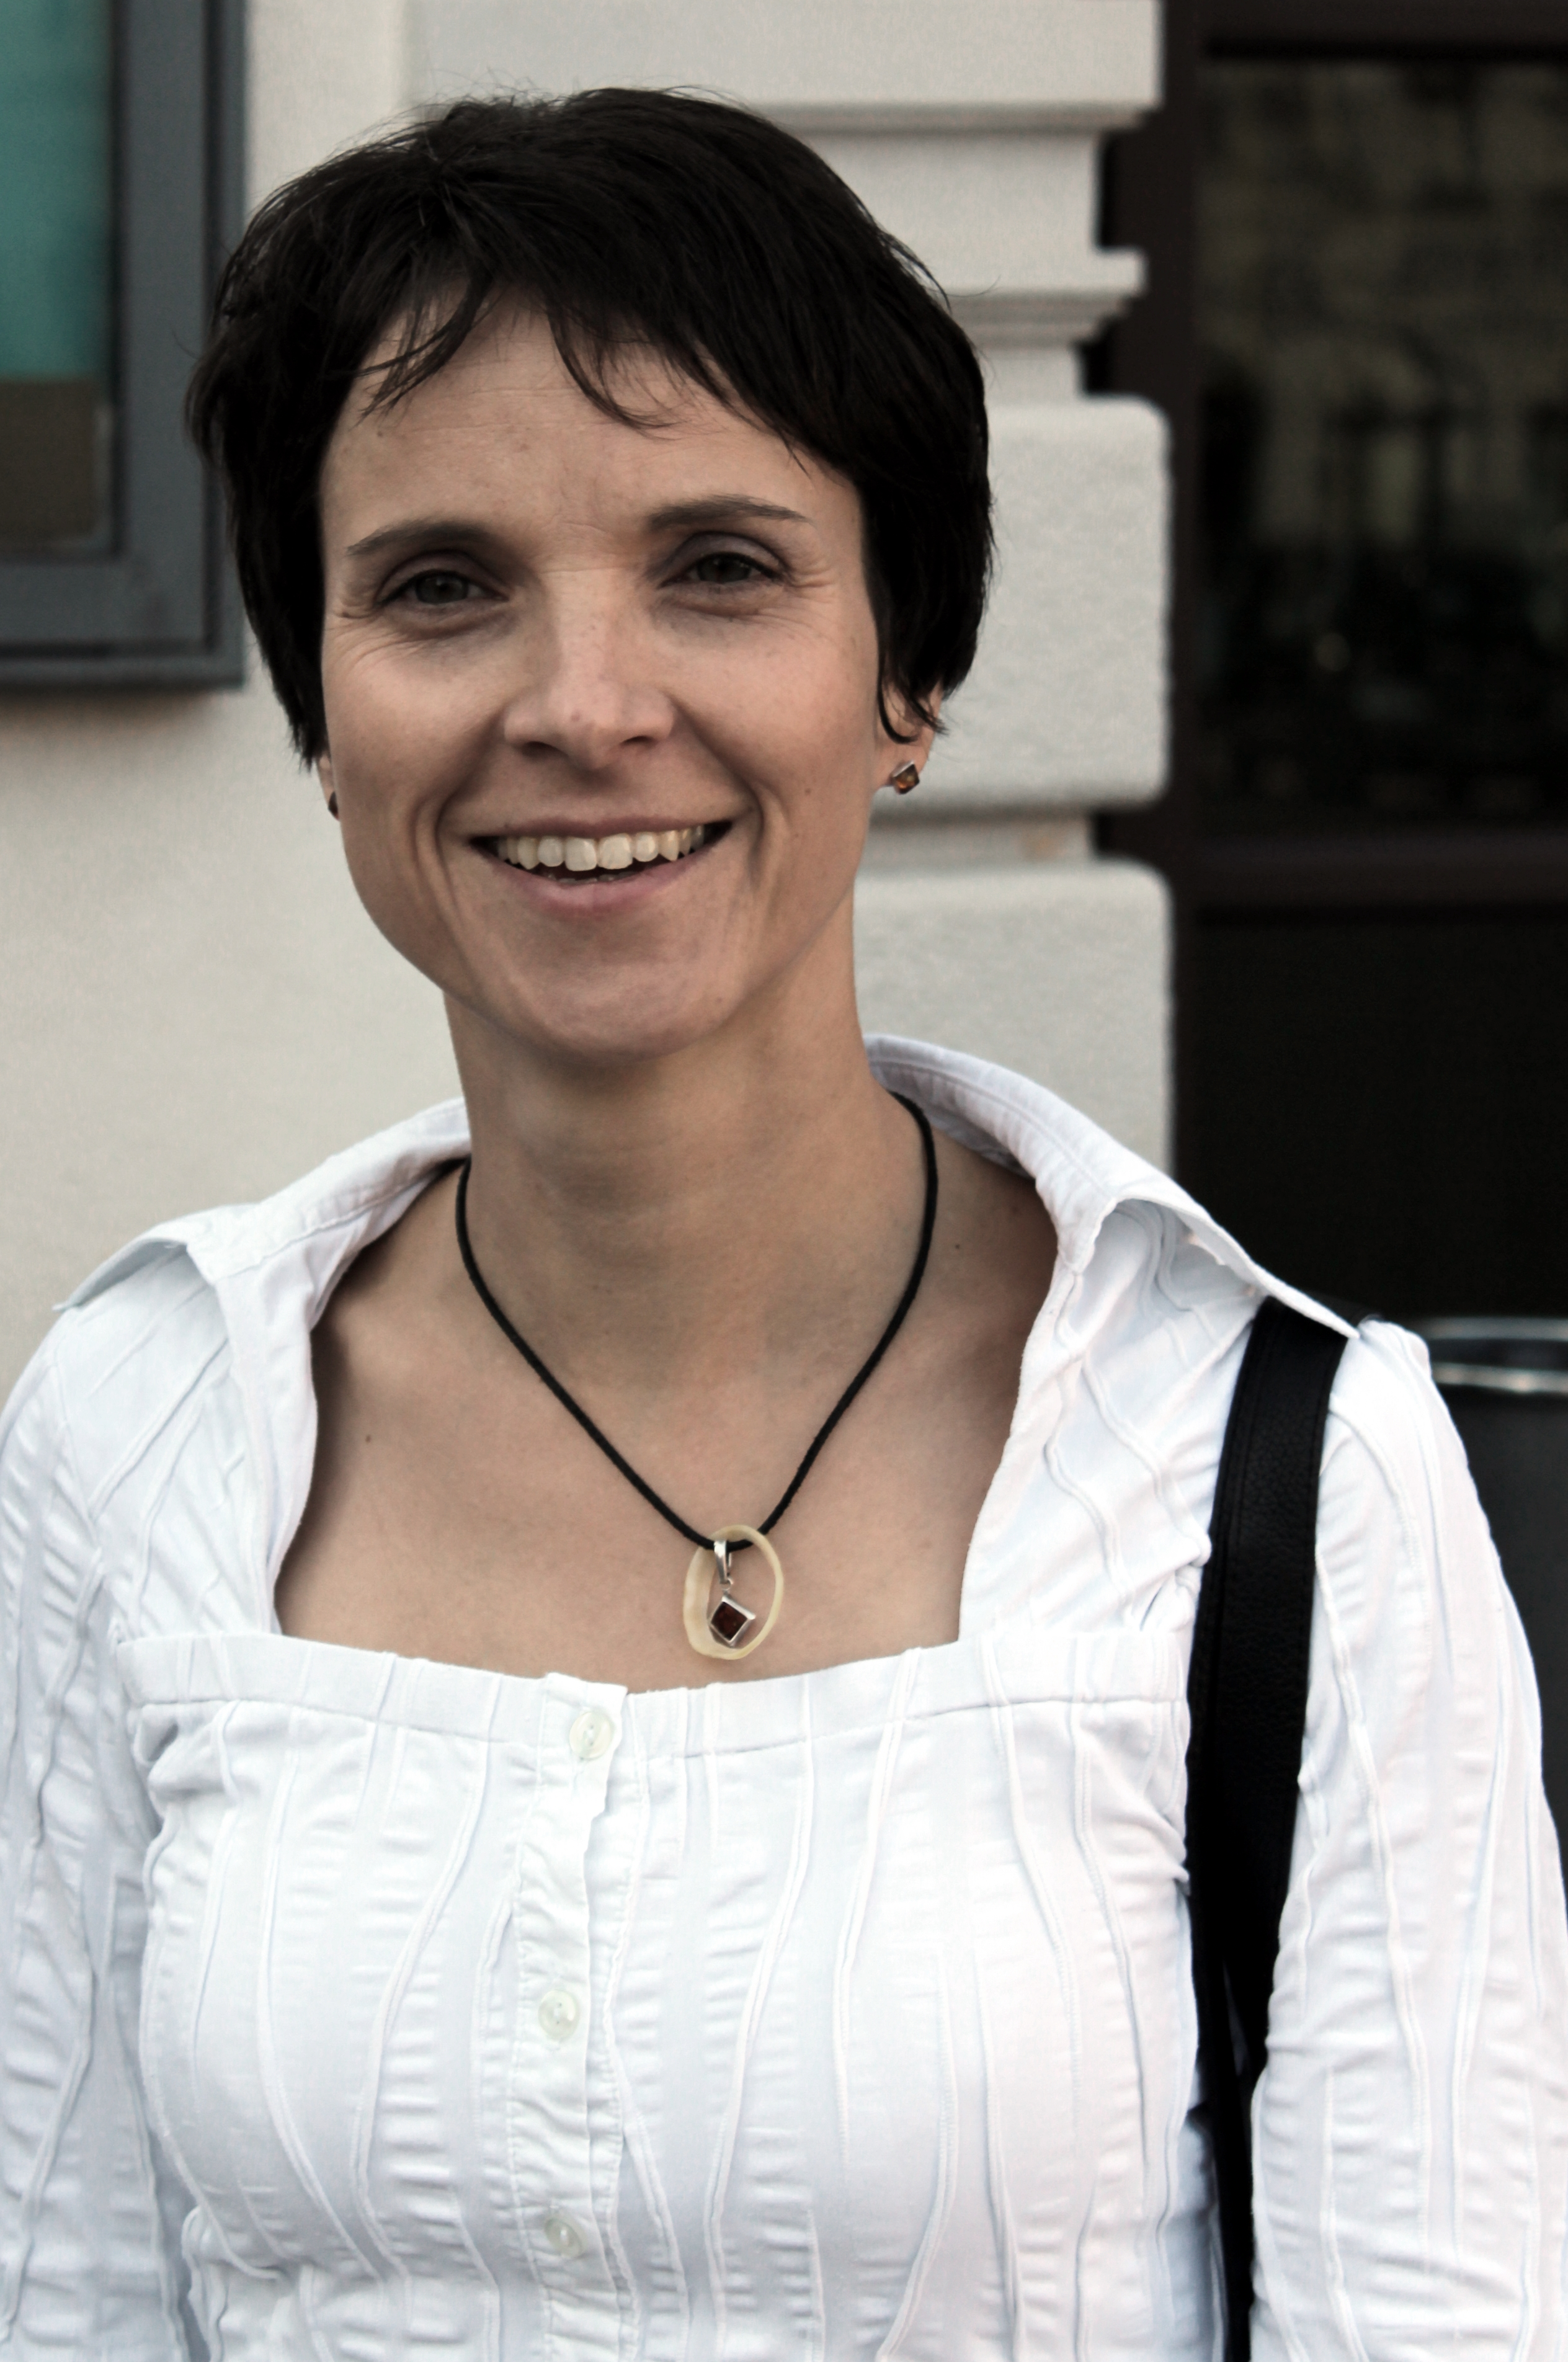 Frauje petry nackt